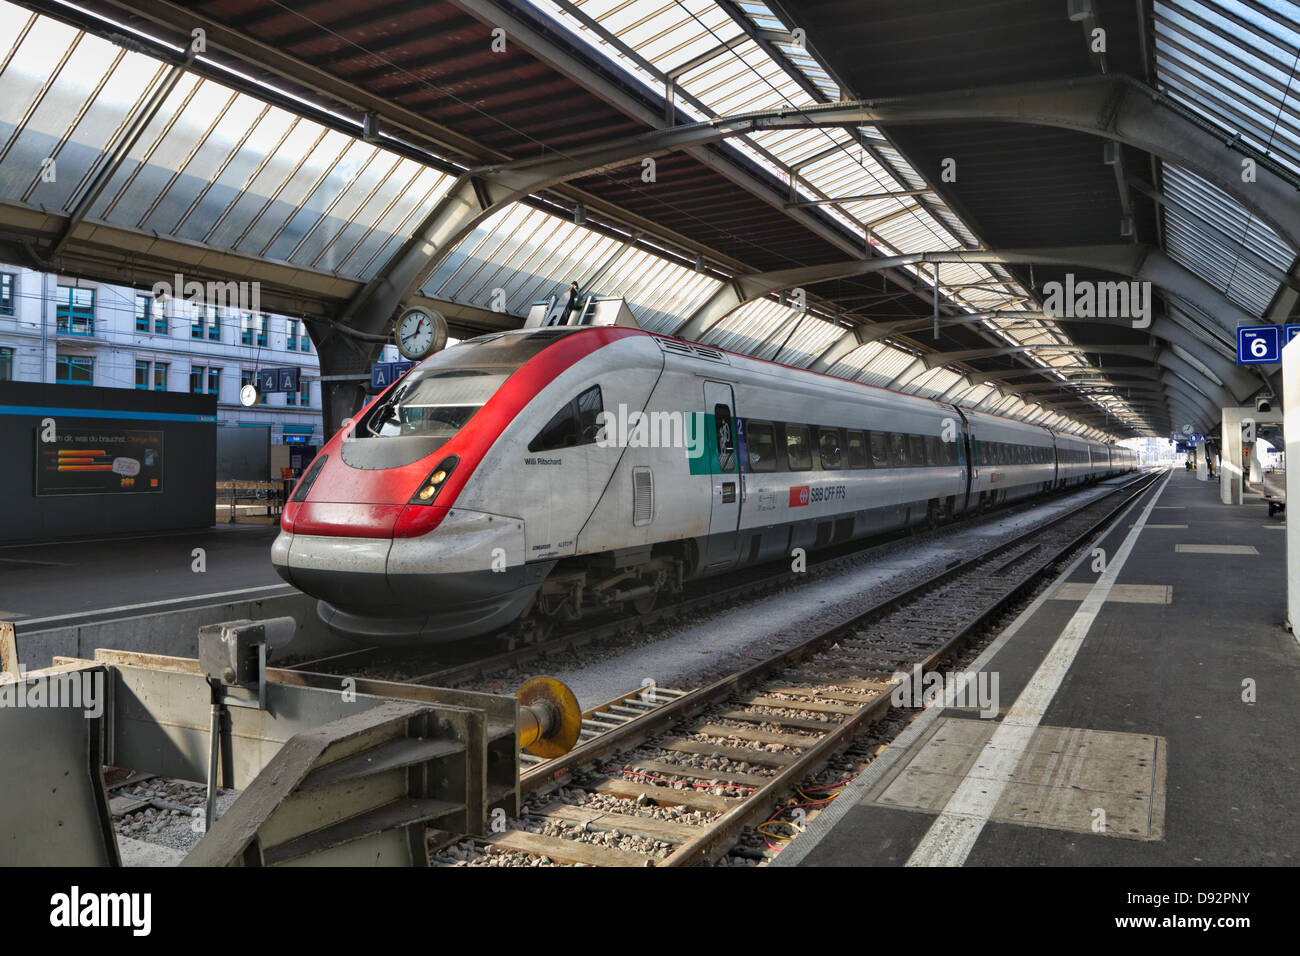 High Speed Train in the Main Railway Terminal, Zurich, Switzerland - Stock Image